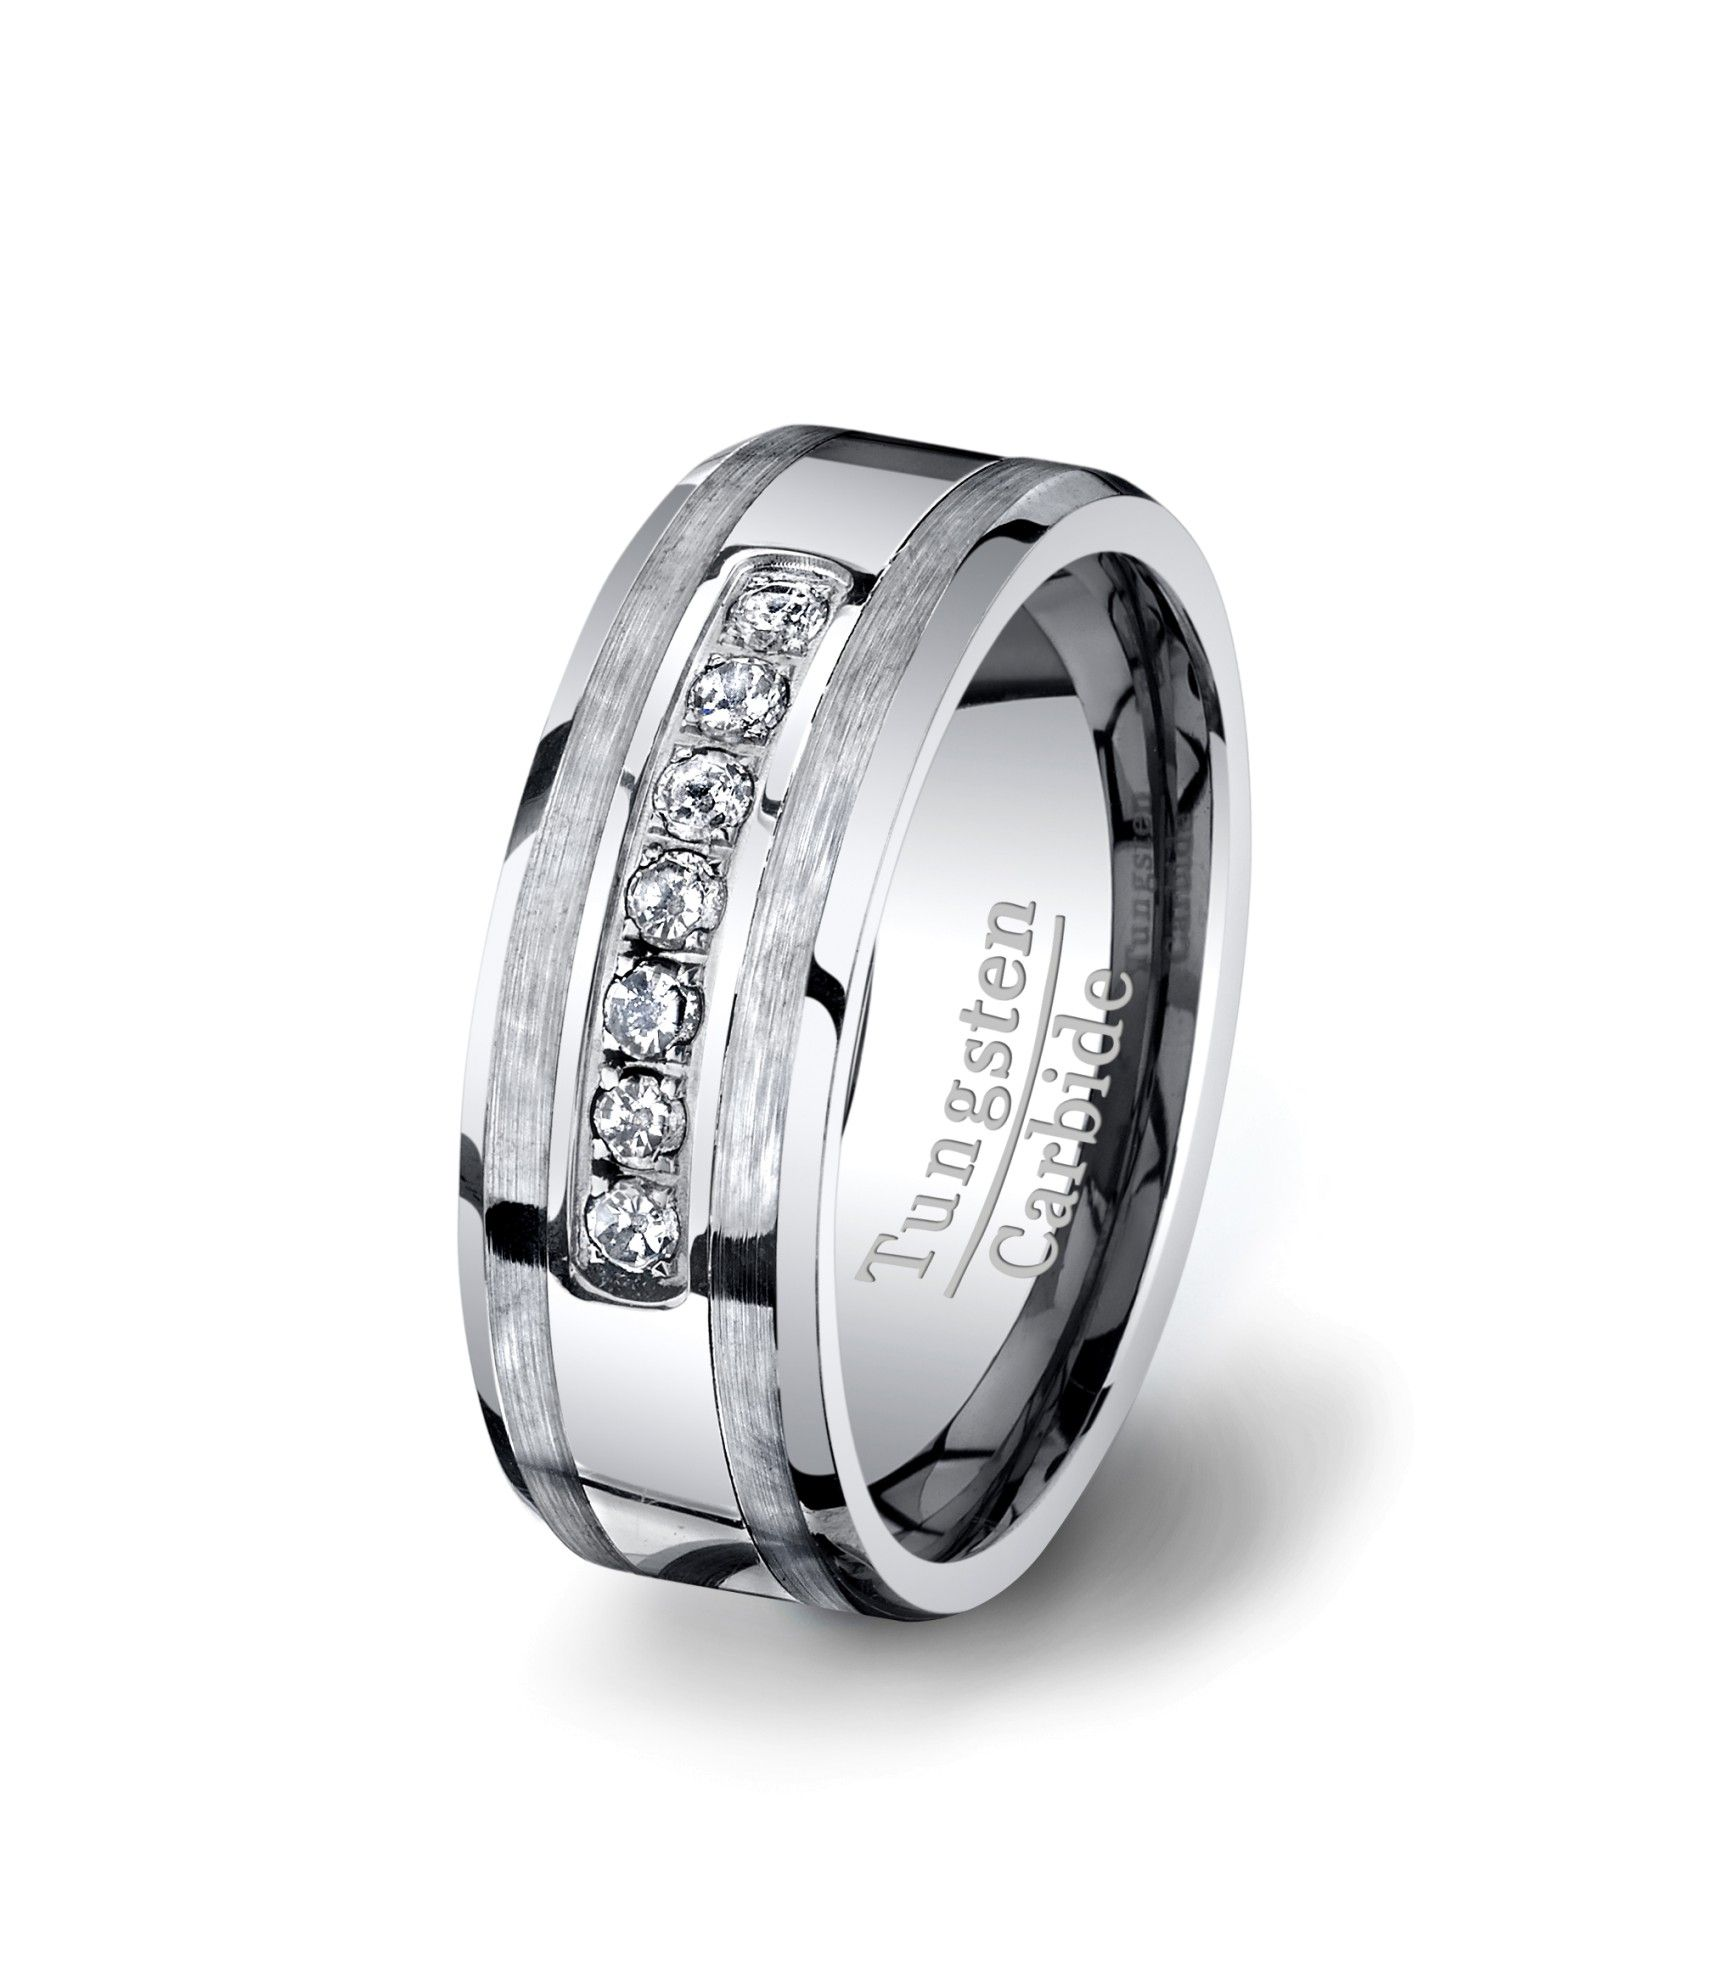 Mens Wedding Band Tungsten Carbide Ring With Brilliant Seven High End Cz Diamond Polish Brushed Satin Sides Gift For Him: Western Style Wedding Rings Tungsten At Websimilar.org